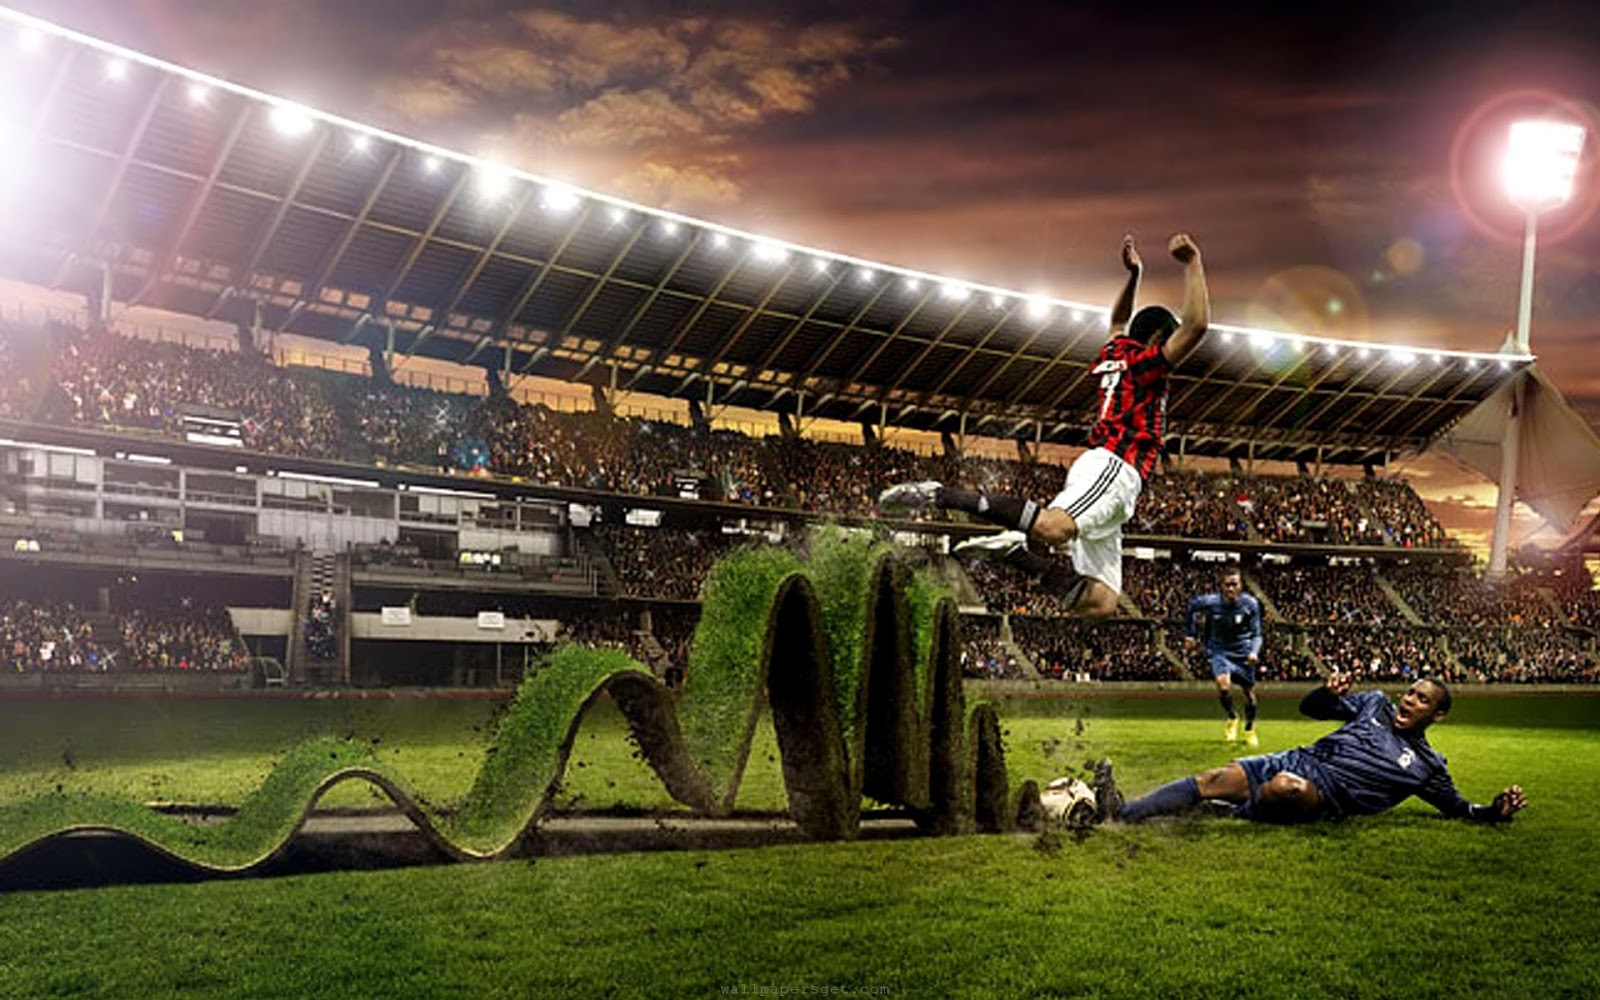 Football Wallpaper for Desktop - WallpaperSafari